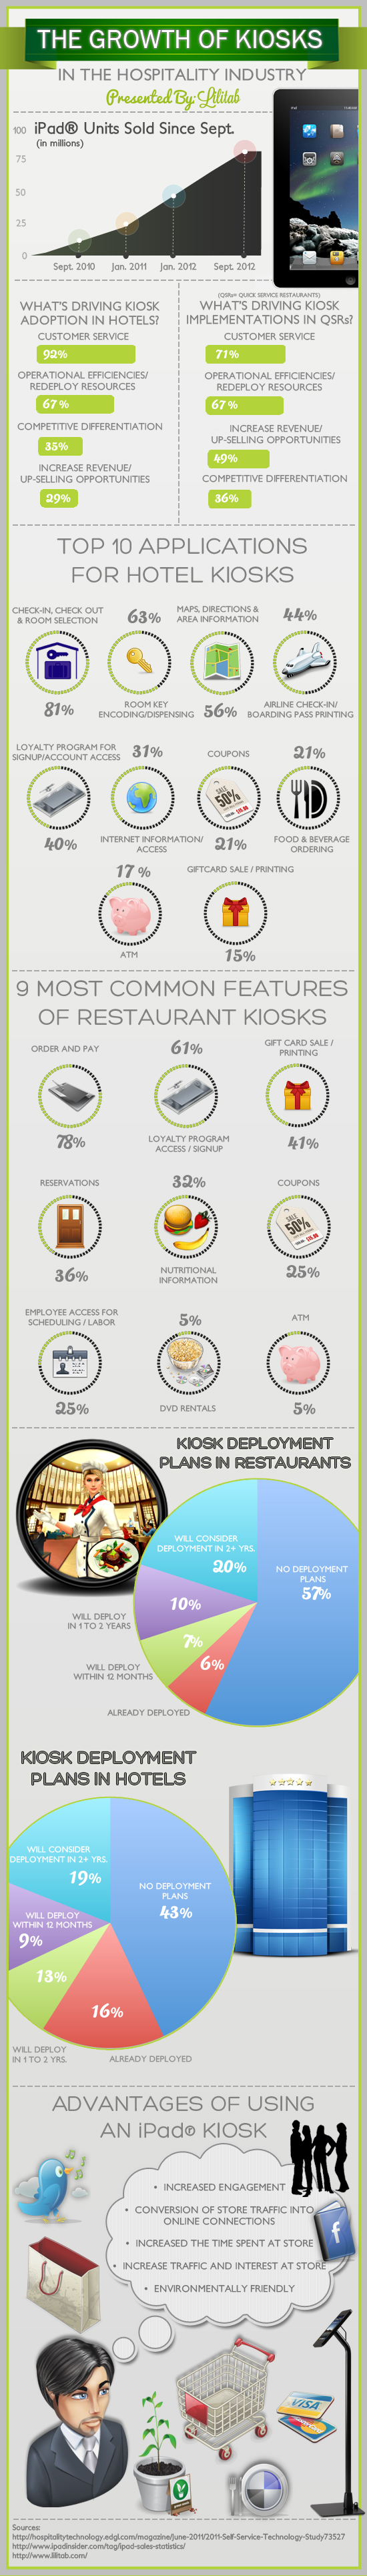 The Growth of Kiosks in the Hospitality Industry